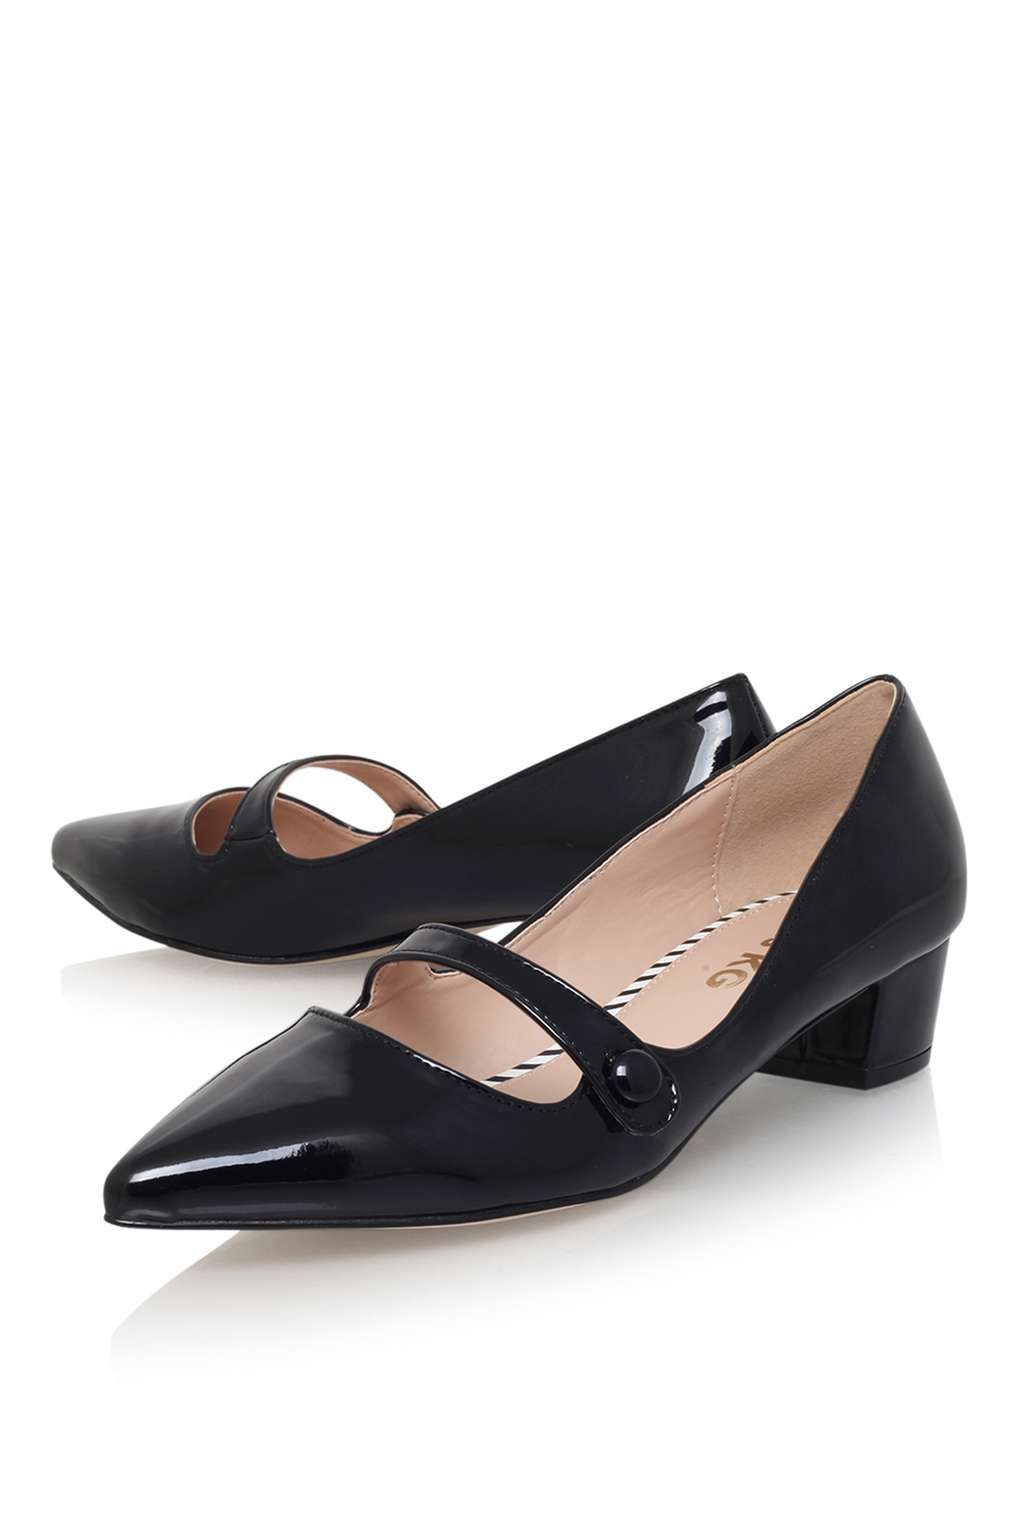 **Audrina Black Low Heel by Miss KG - Shoes- Topshop Europe